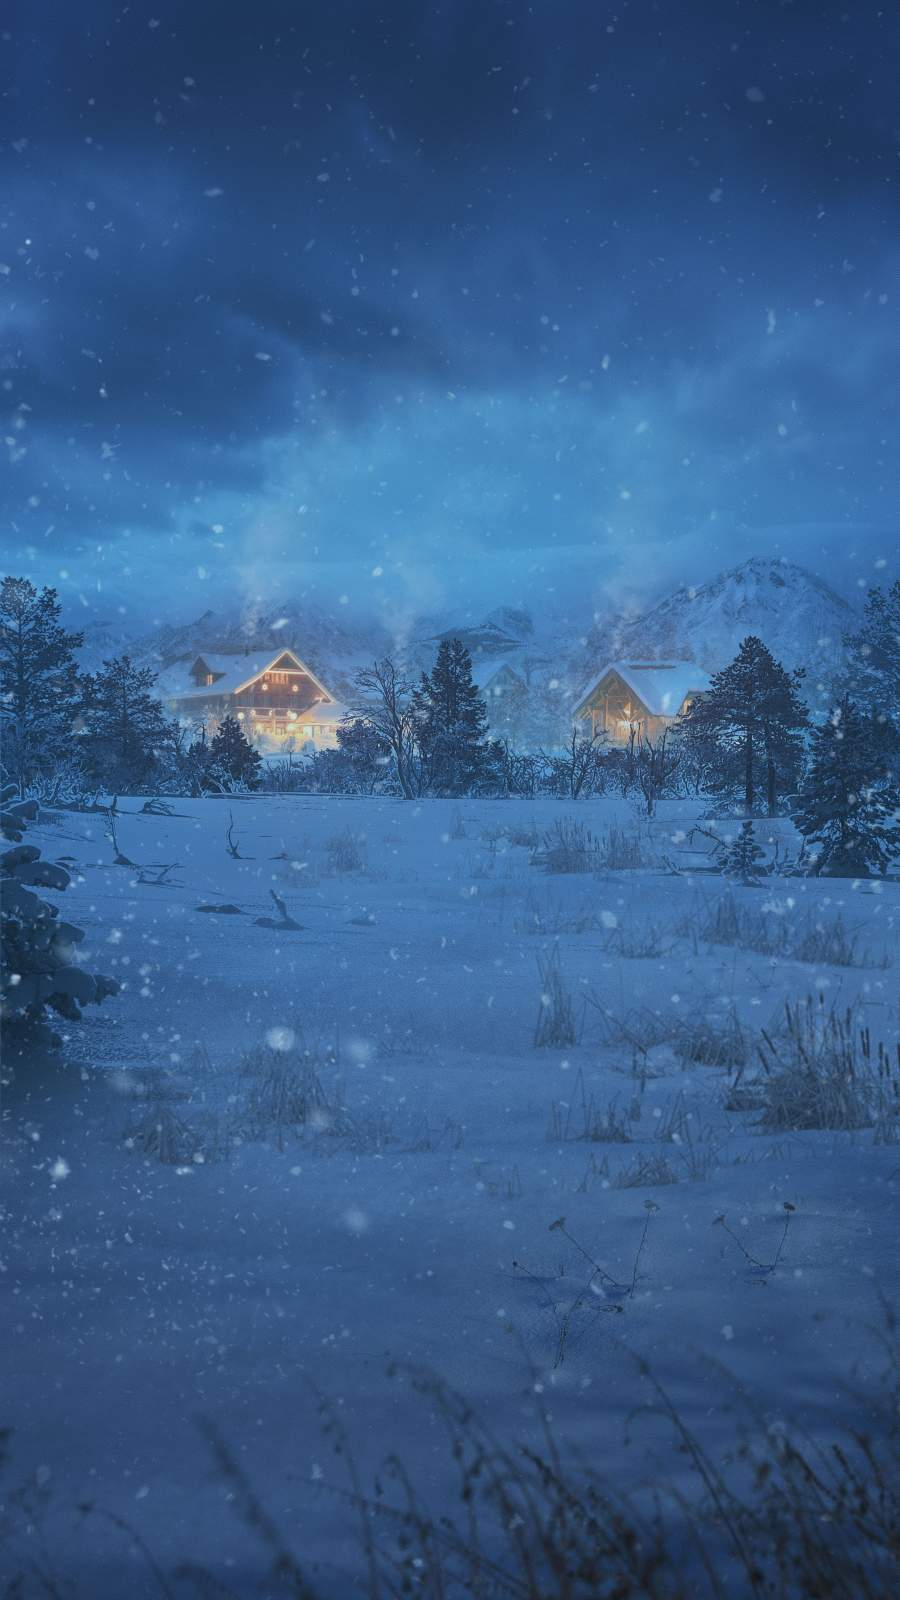 Snow Night Houses iPhone Wallpaper